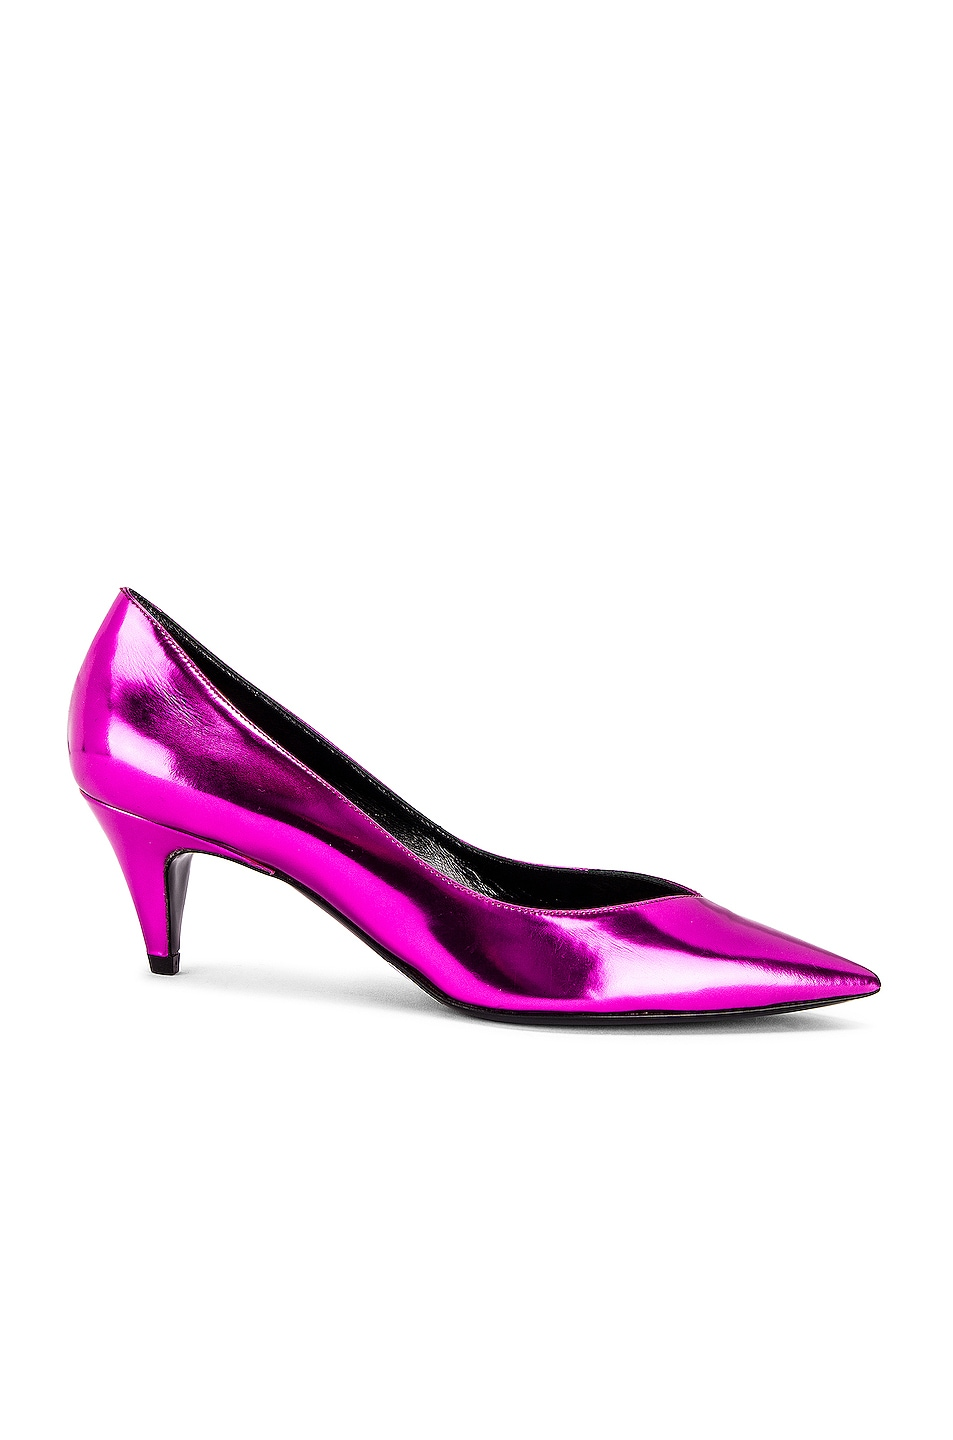 Image 1 of Saint Laurent Kiki Kitten Heels in Fuchsia